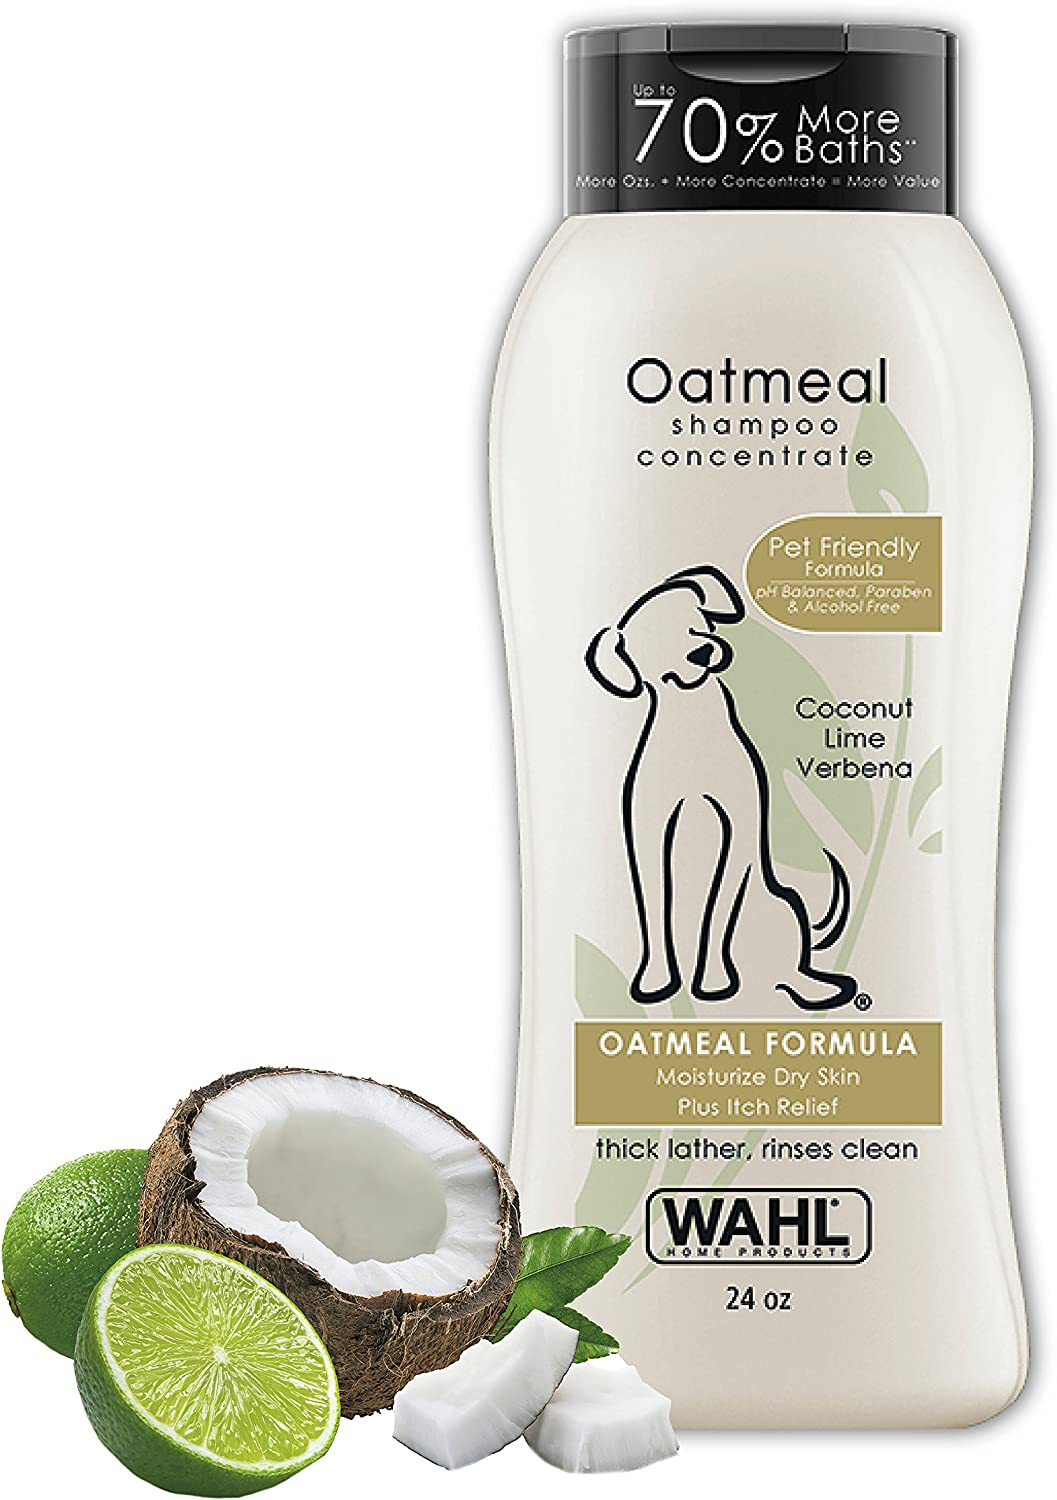 oatmeal shampoo review